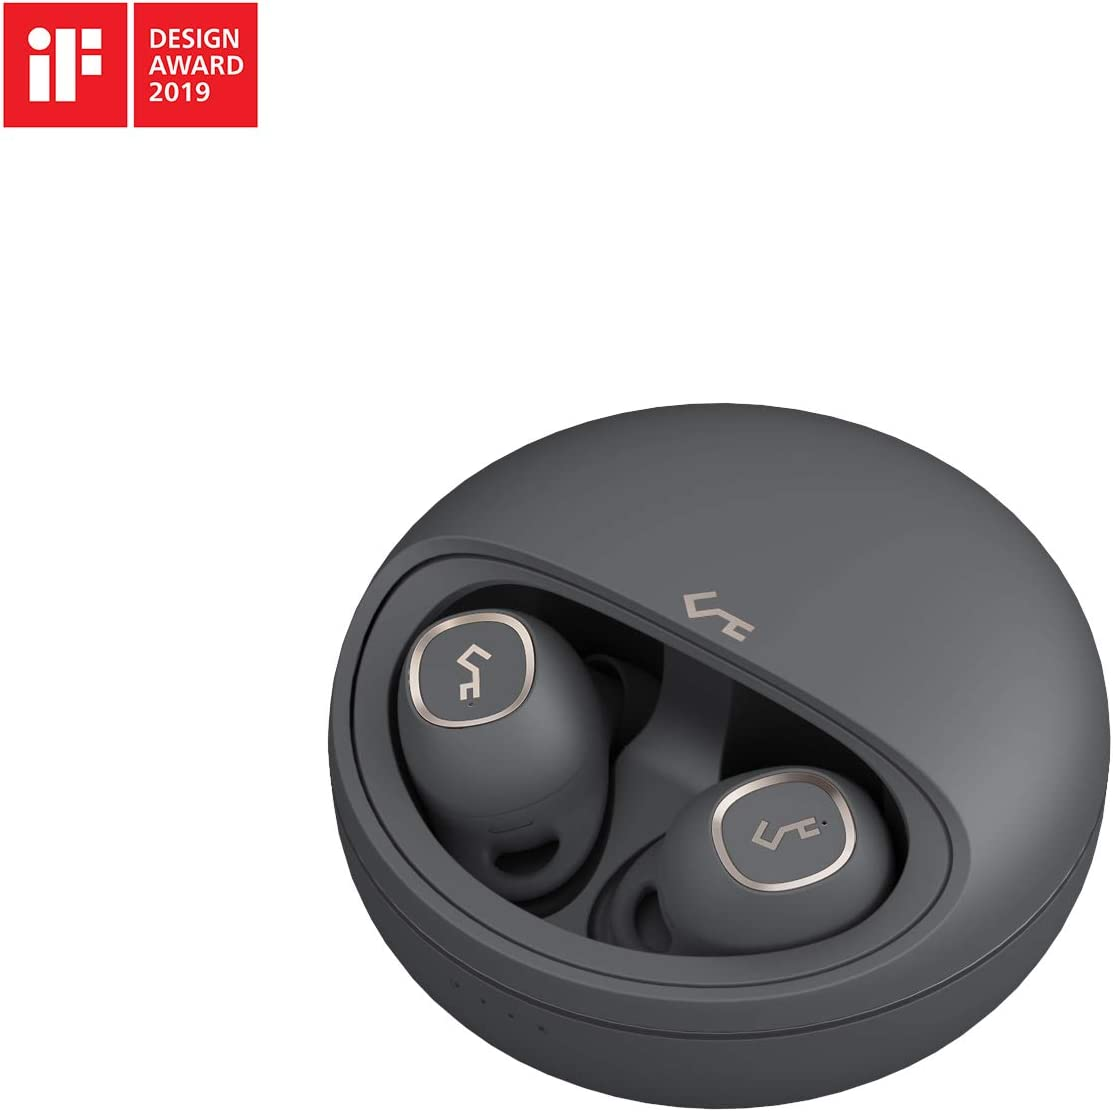 AUKEY True Wireless Earbuds, Bluetooth 5 with Charging Case, 24h Playtime, Deep Bass, USB-C Qi Wireless Charging, Secure Fit, Touch Control, One-step Pairing, Key Series T10